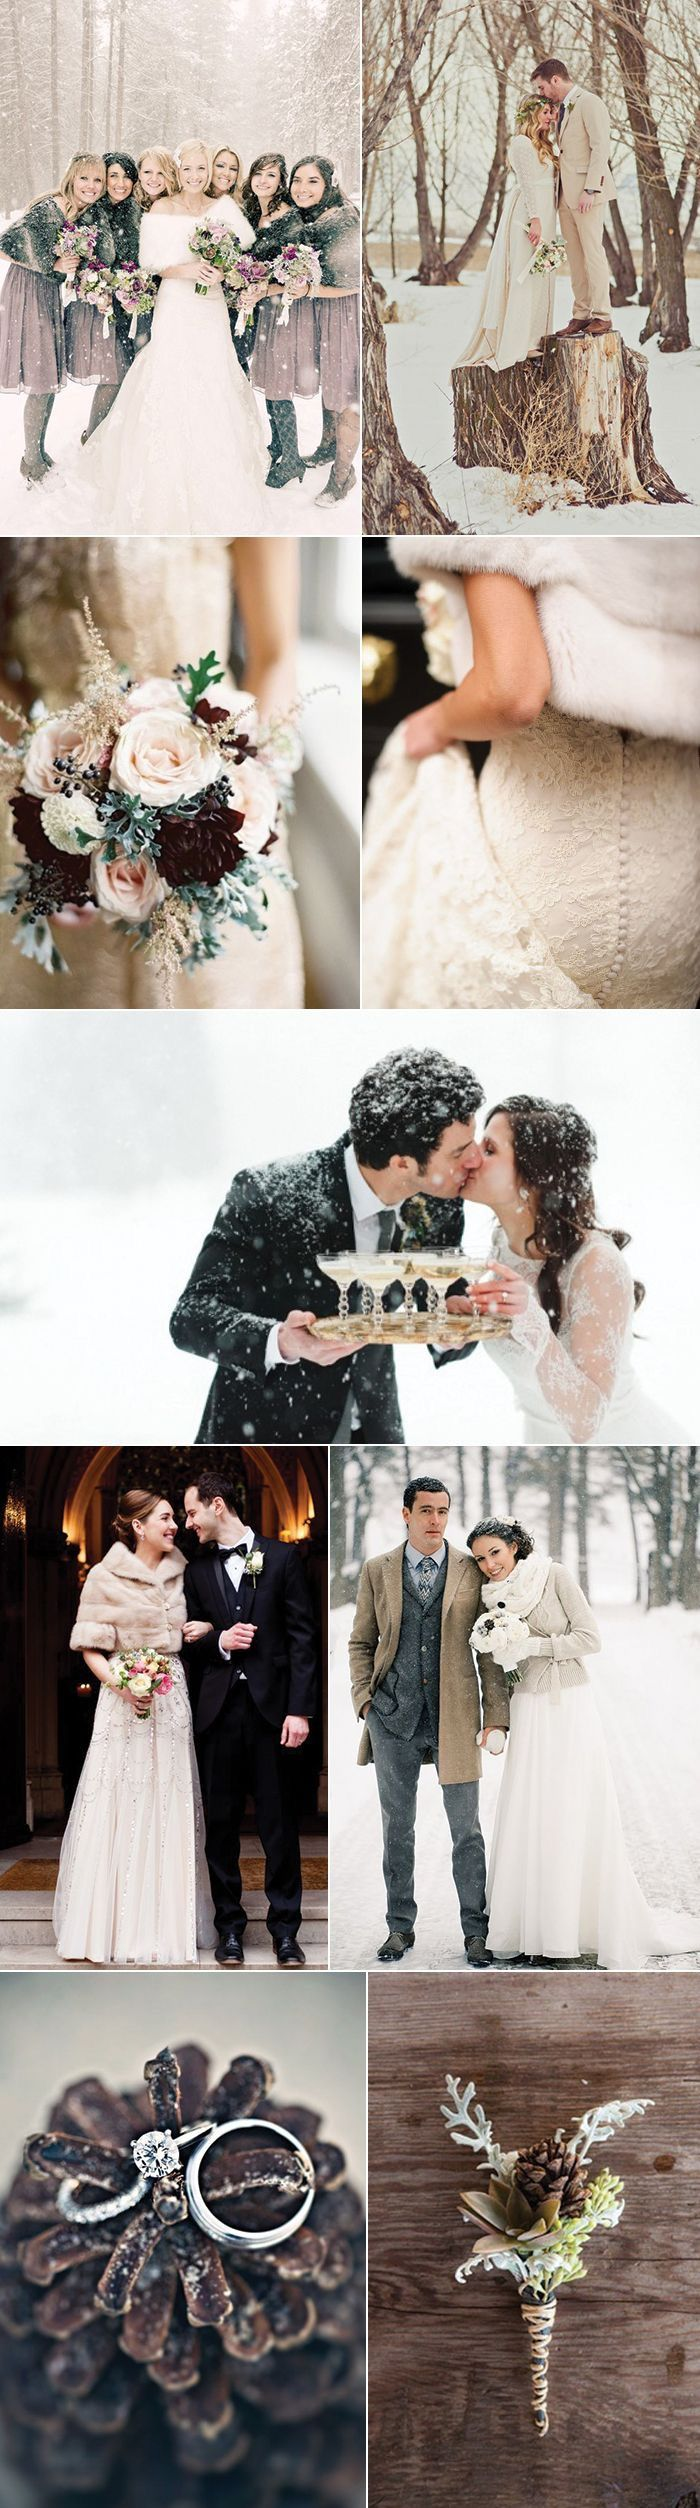 winter wedding in the snow, bride and groom photos in the snow, winter white wedding style